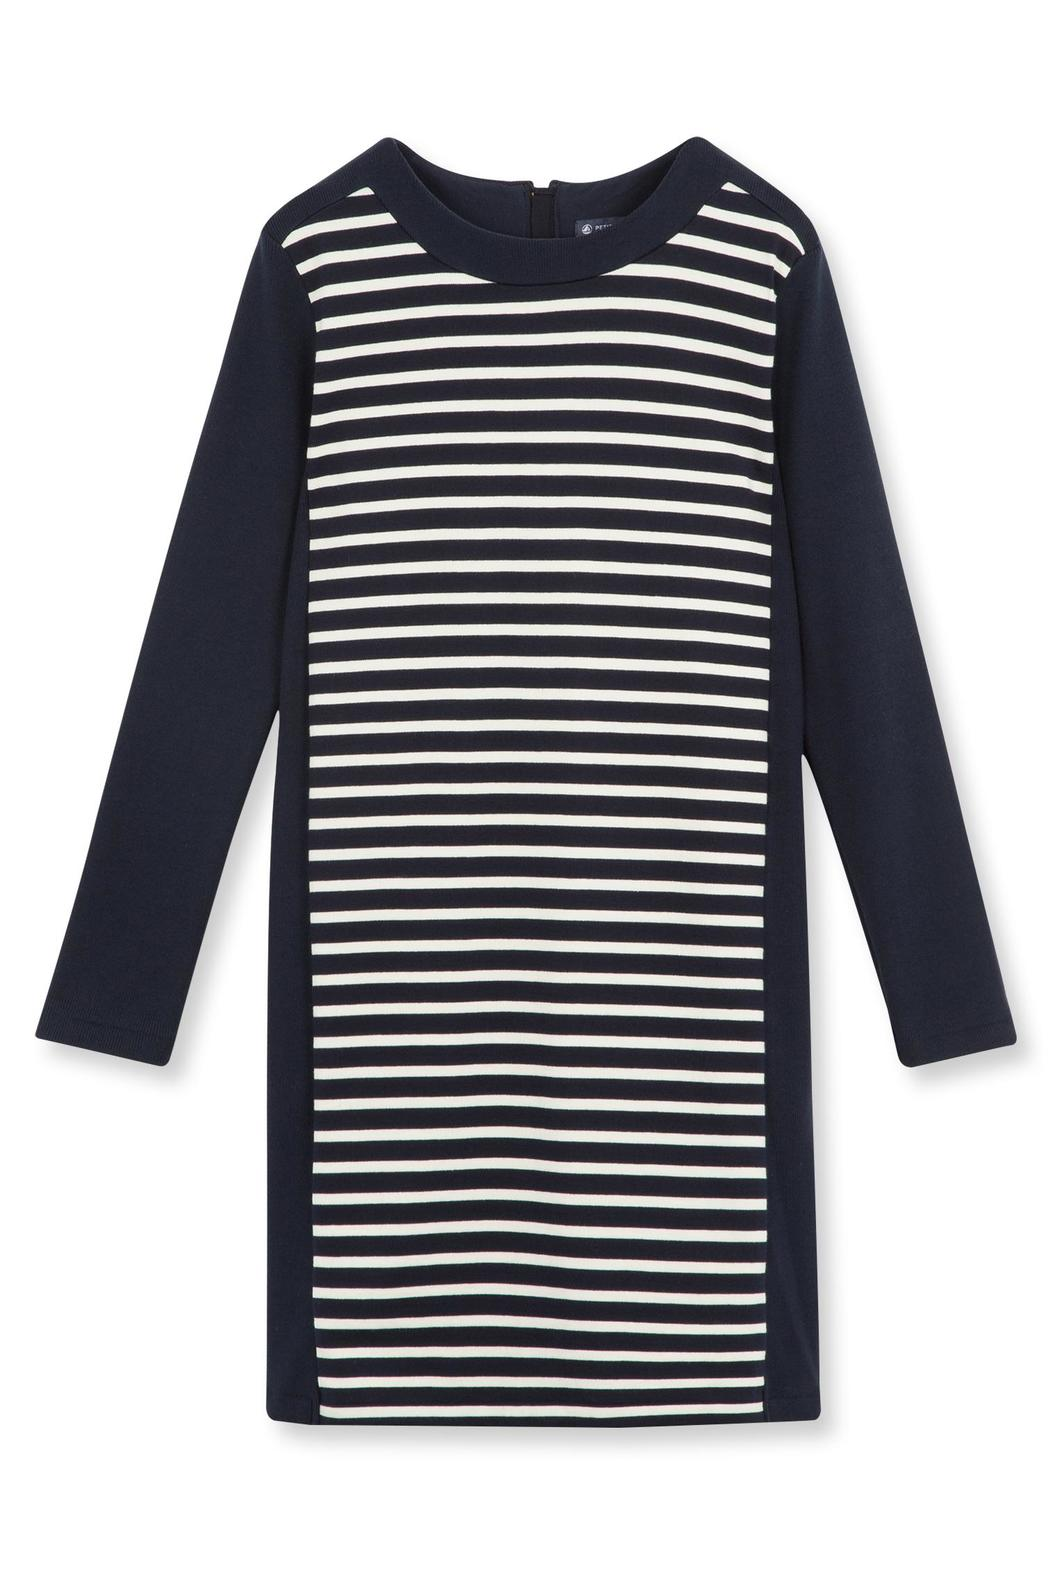 petit bateau Stripe Shift Dress - Front Cropped Image